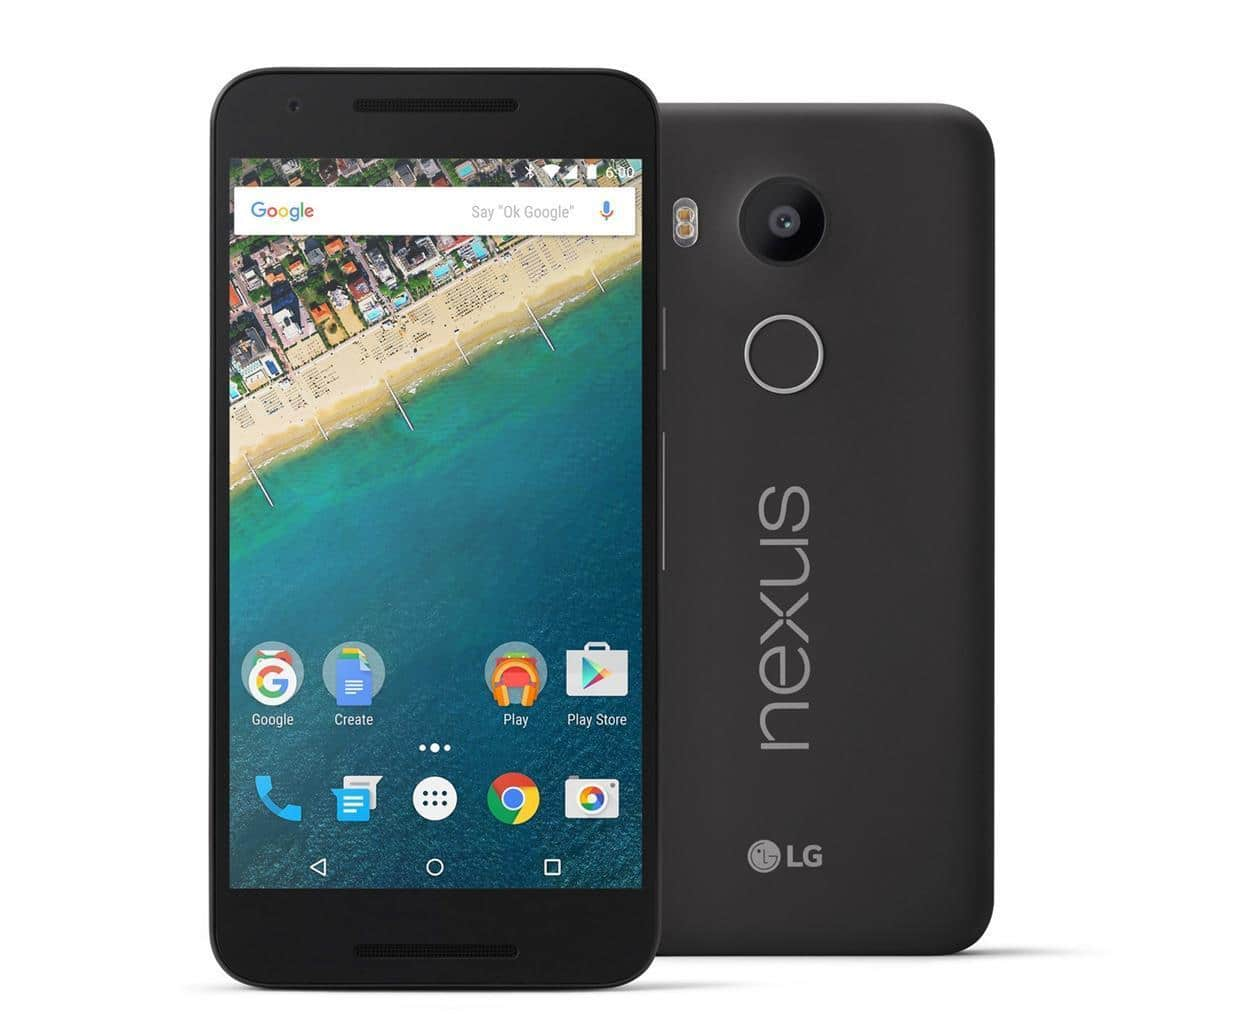 LG Nexus 5X H790 16GB (Factory GSM Unlocked) 4G LTE Android Smartphone $280 + Free Shipping (eBay Daily Deal)